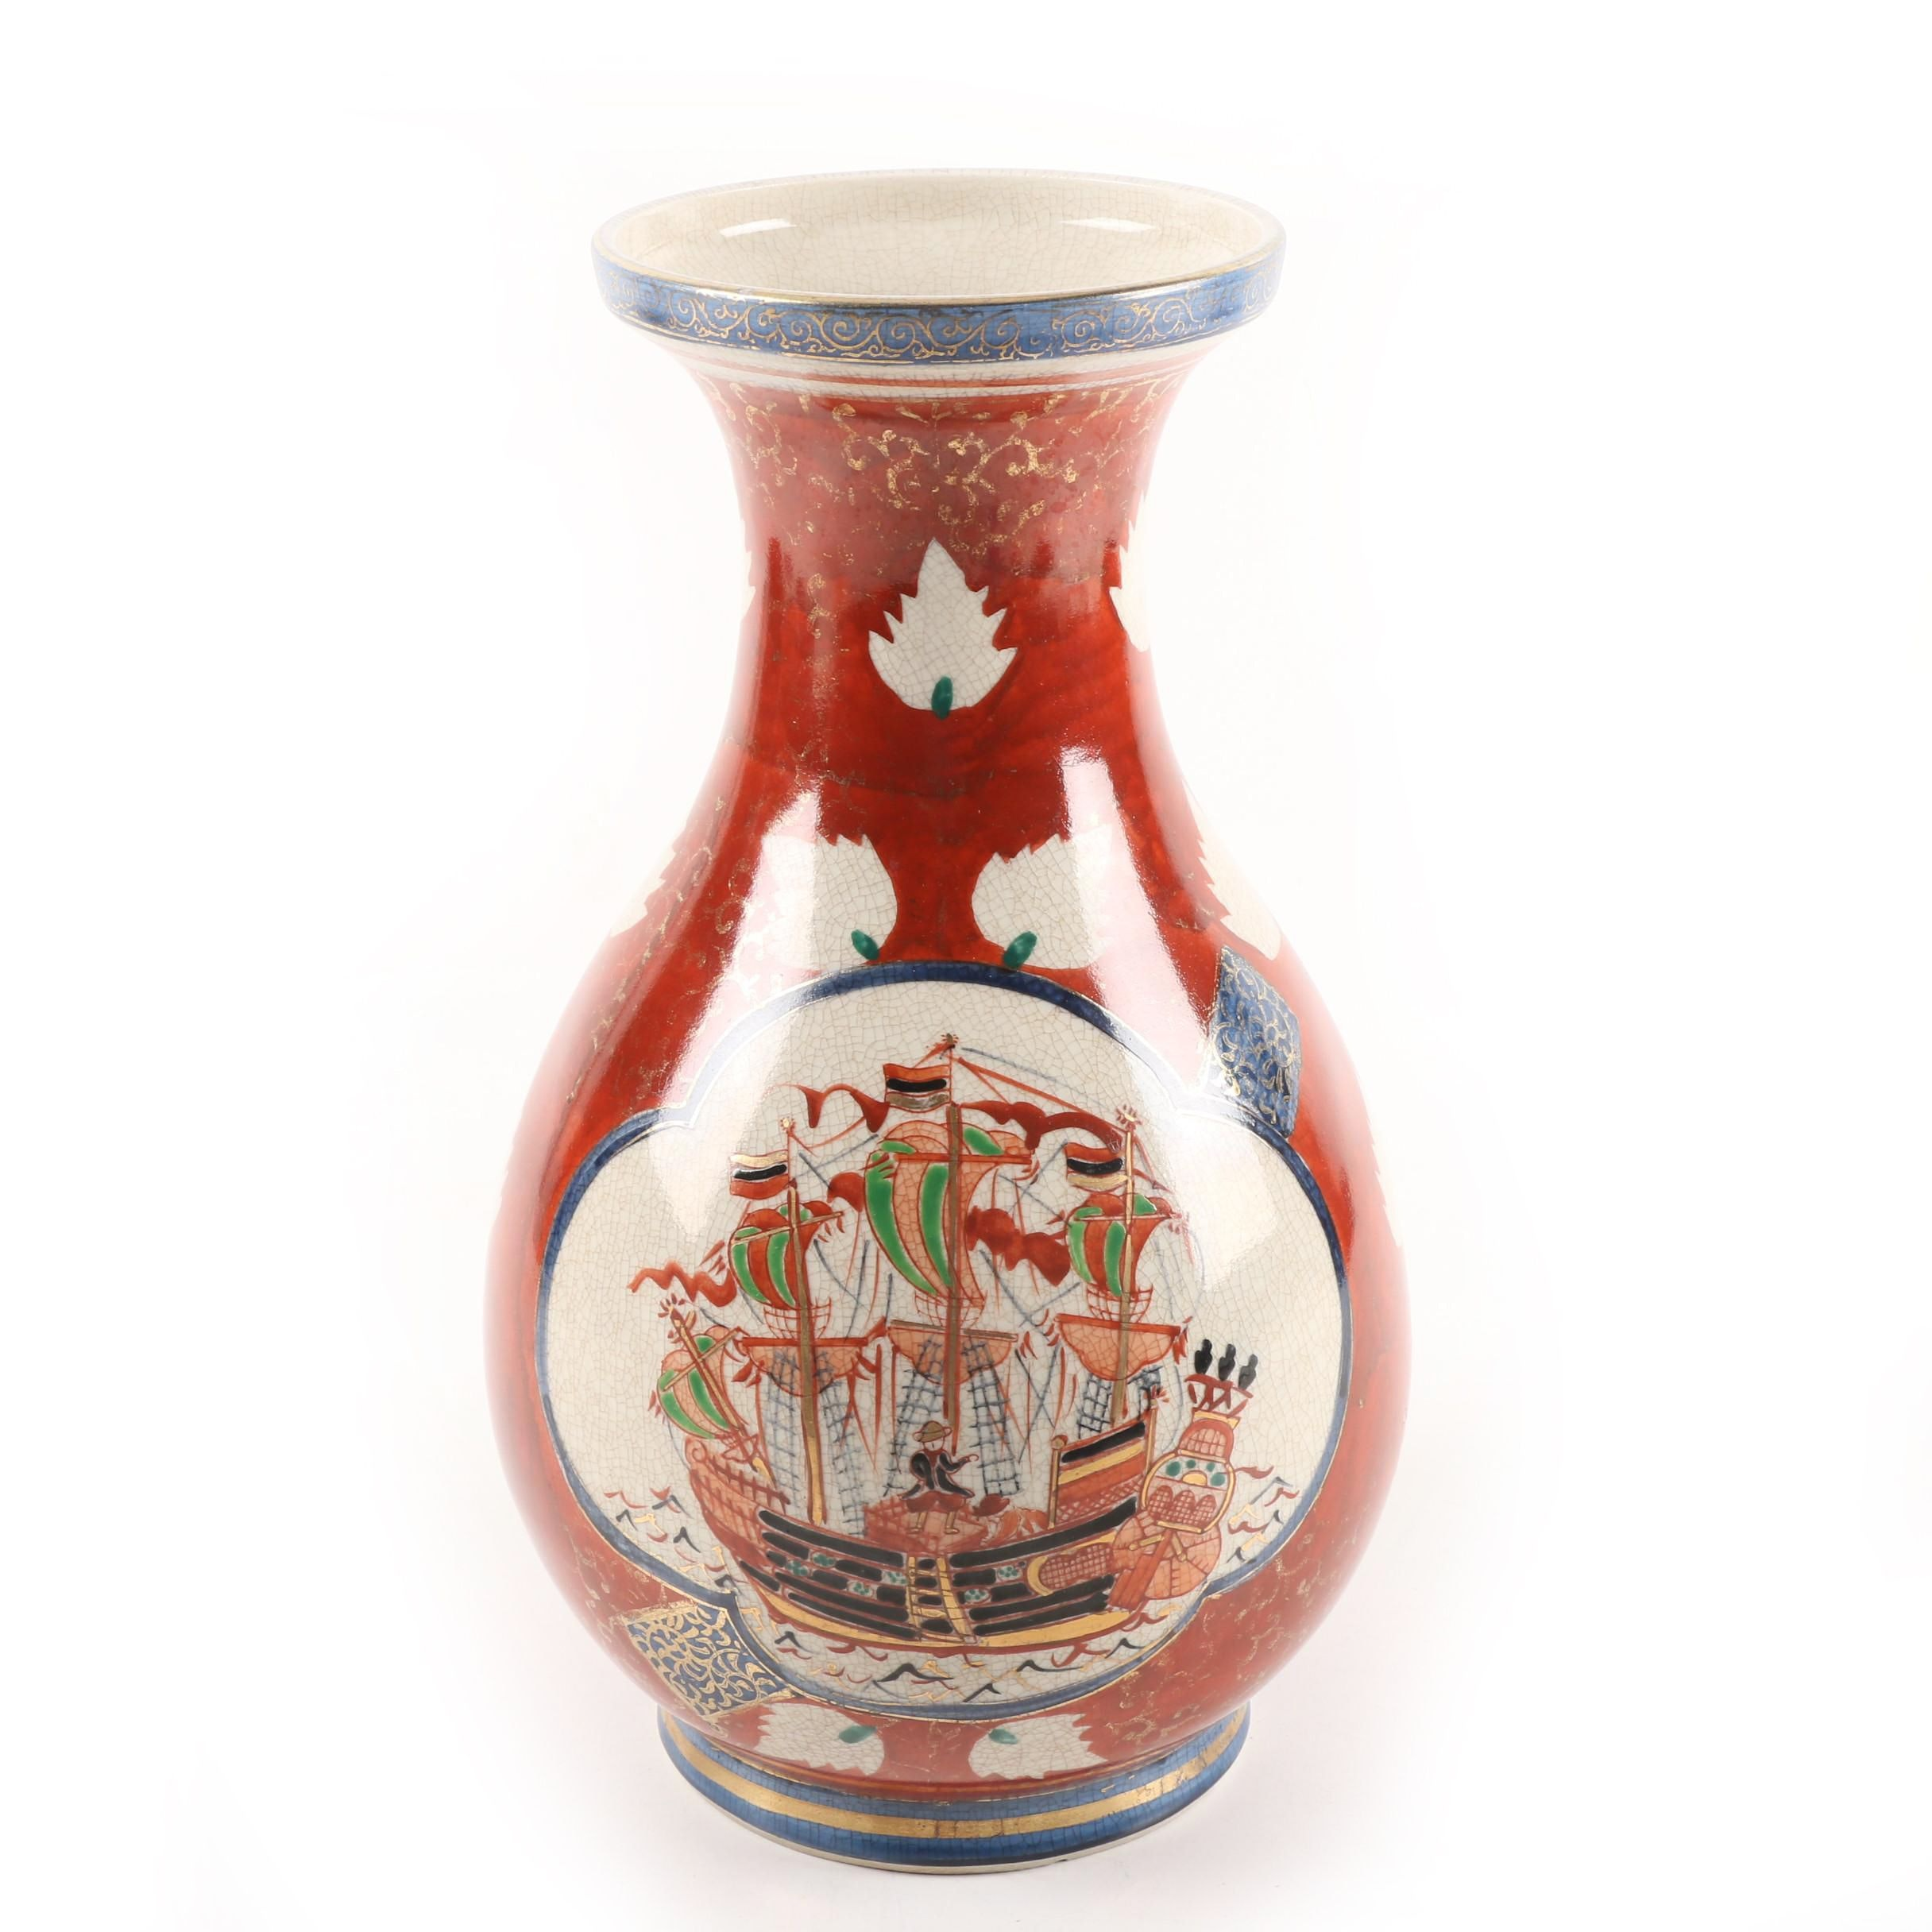 Chinese Export Ware Porcelain Vase